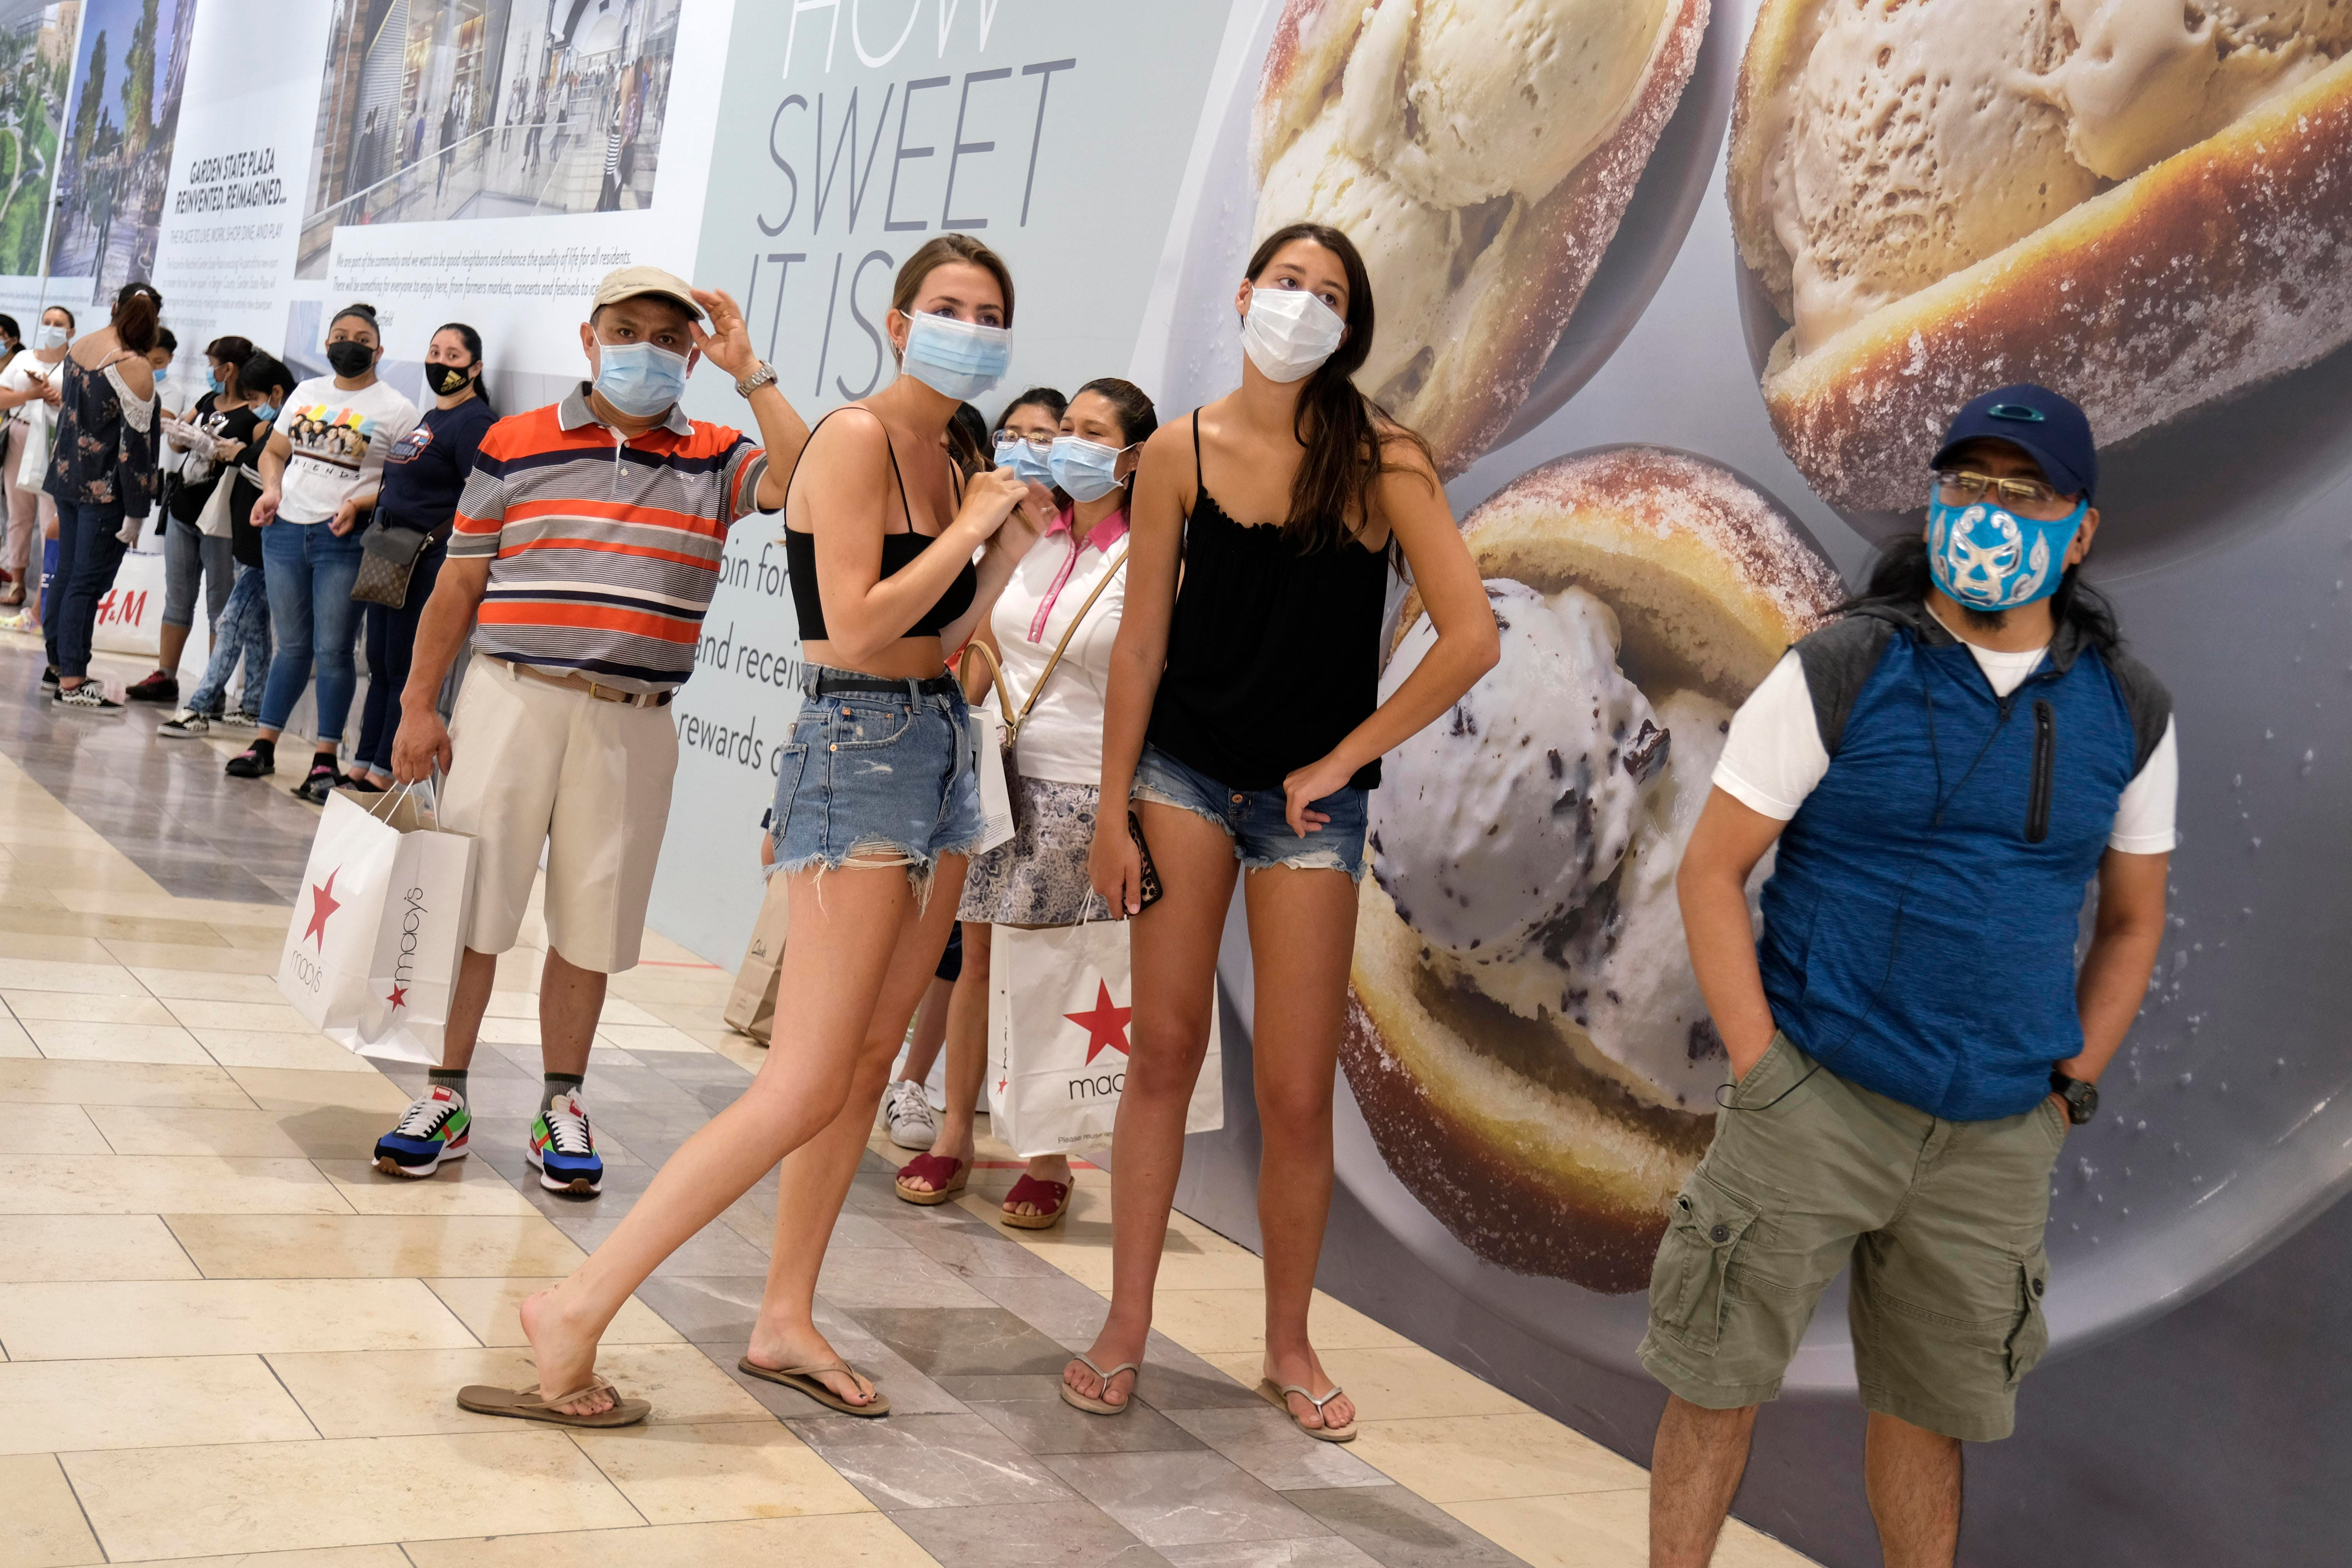 Mask mandates depend on states, cities but stores like Costco require